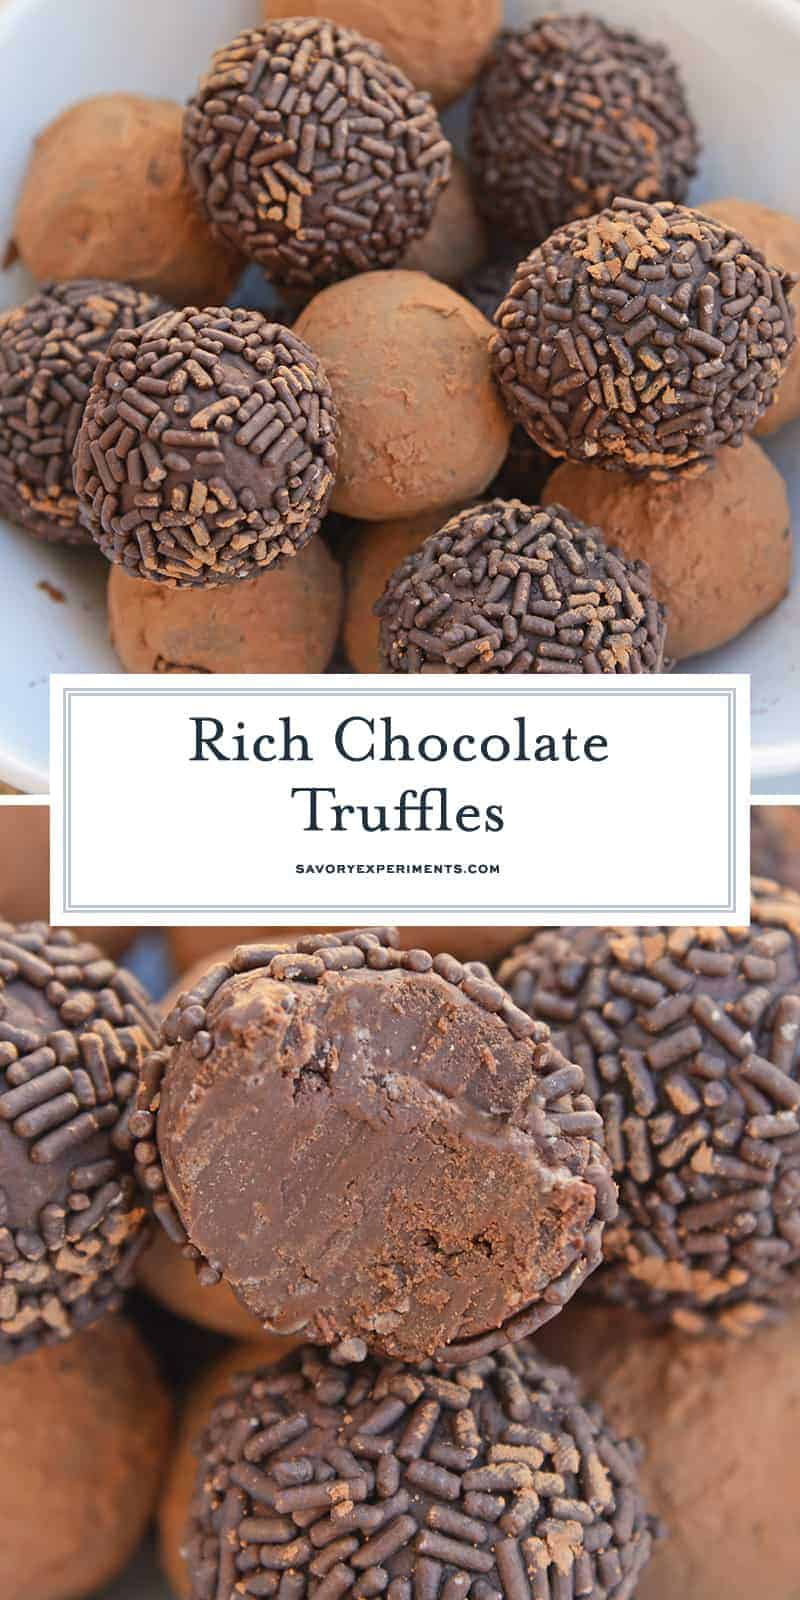 Easy Chocolate Truffles only use 4 ingredients, including sweetened condensed milk, to make a rich, decadent dessert. Roll them in chocolate sprinkles, powdered sugar or cocoa for the the finished touch!#chocolatetruffles #easytruffles www.savoryexperiments.com